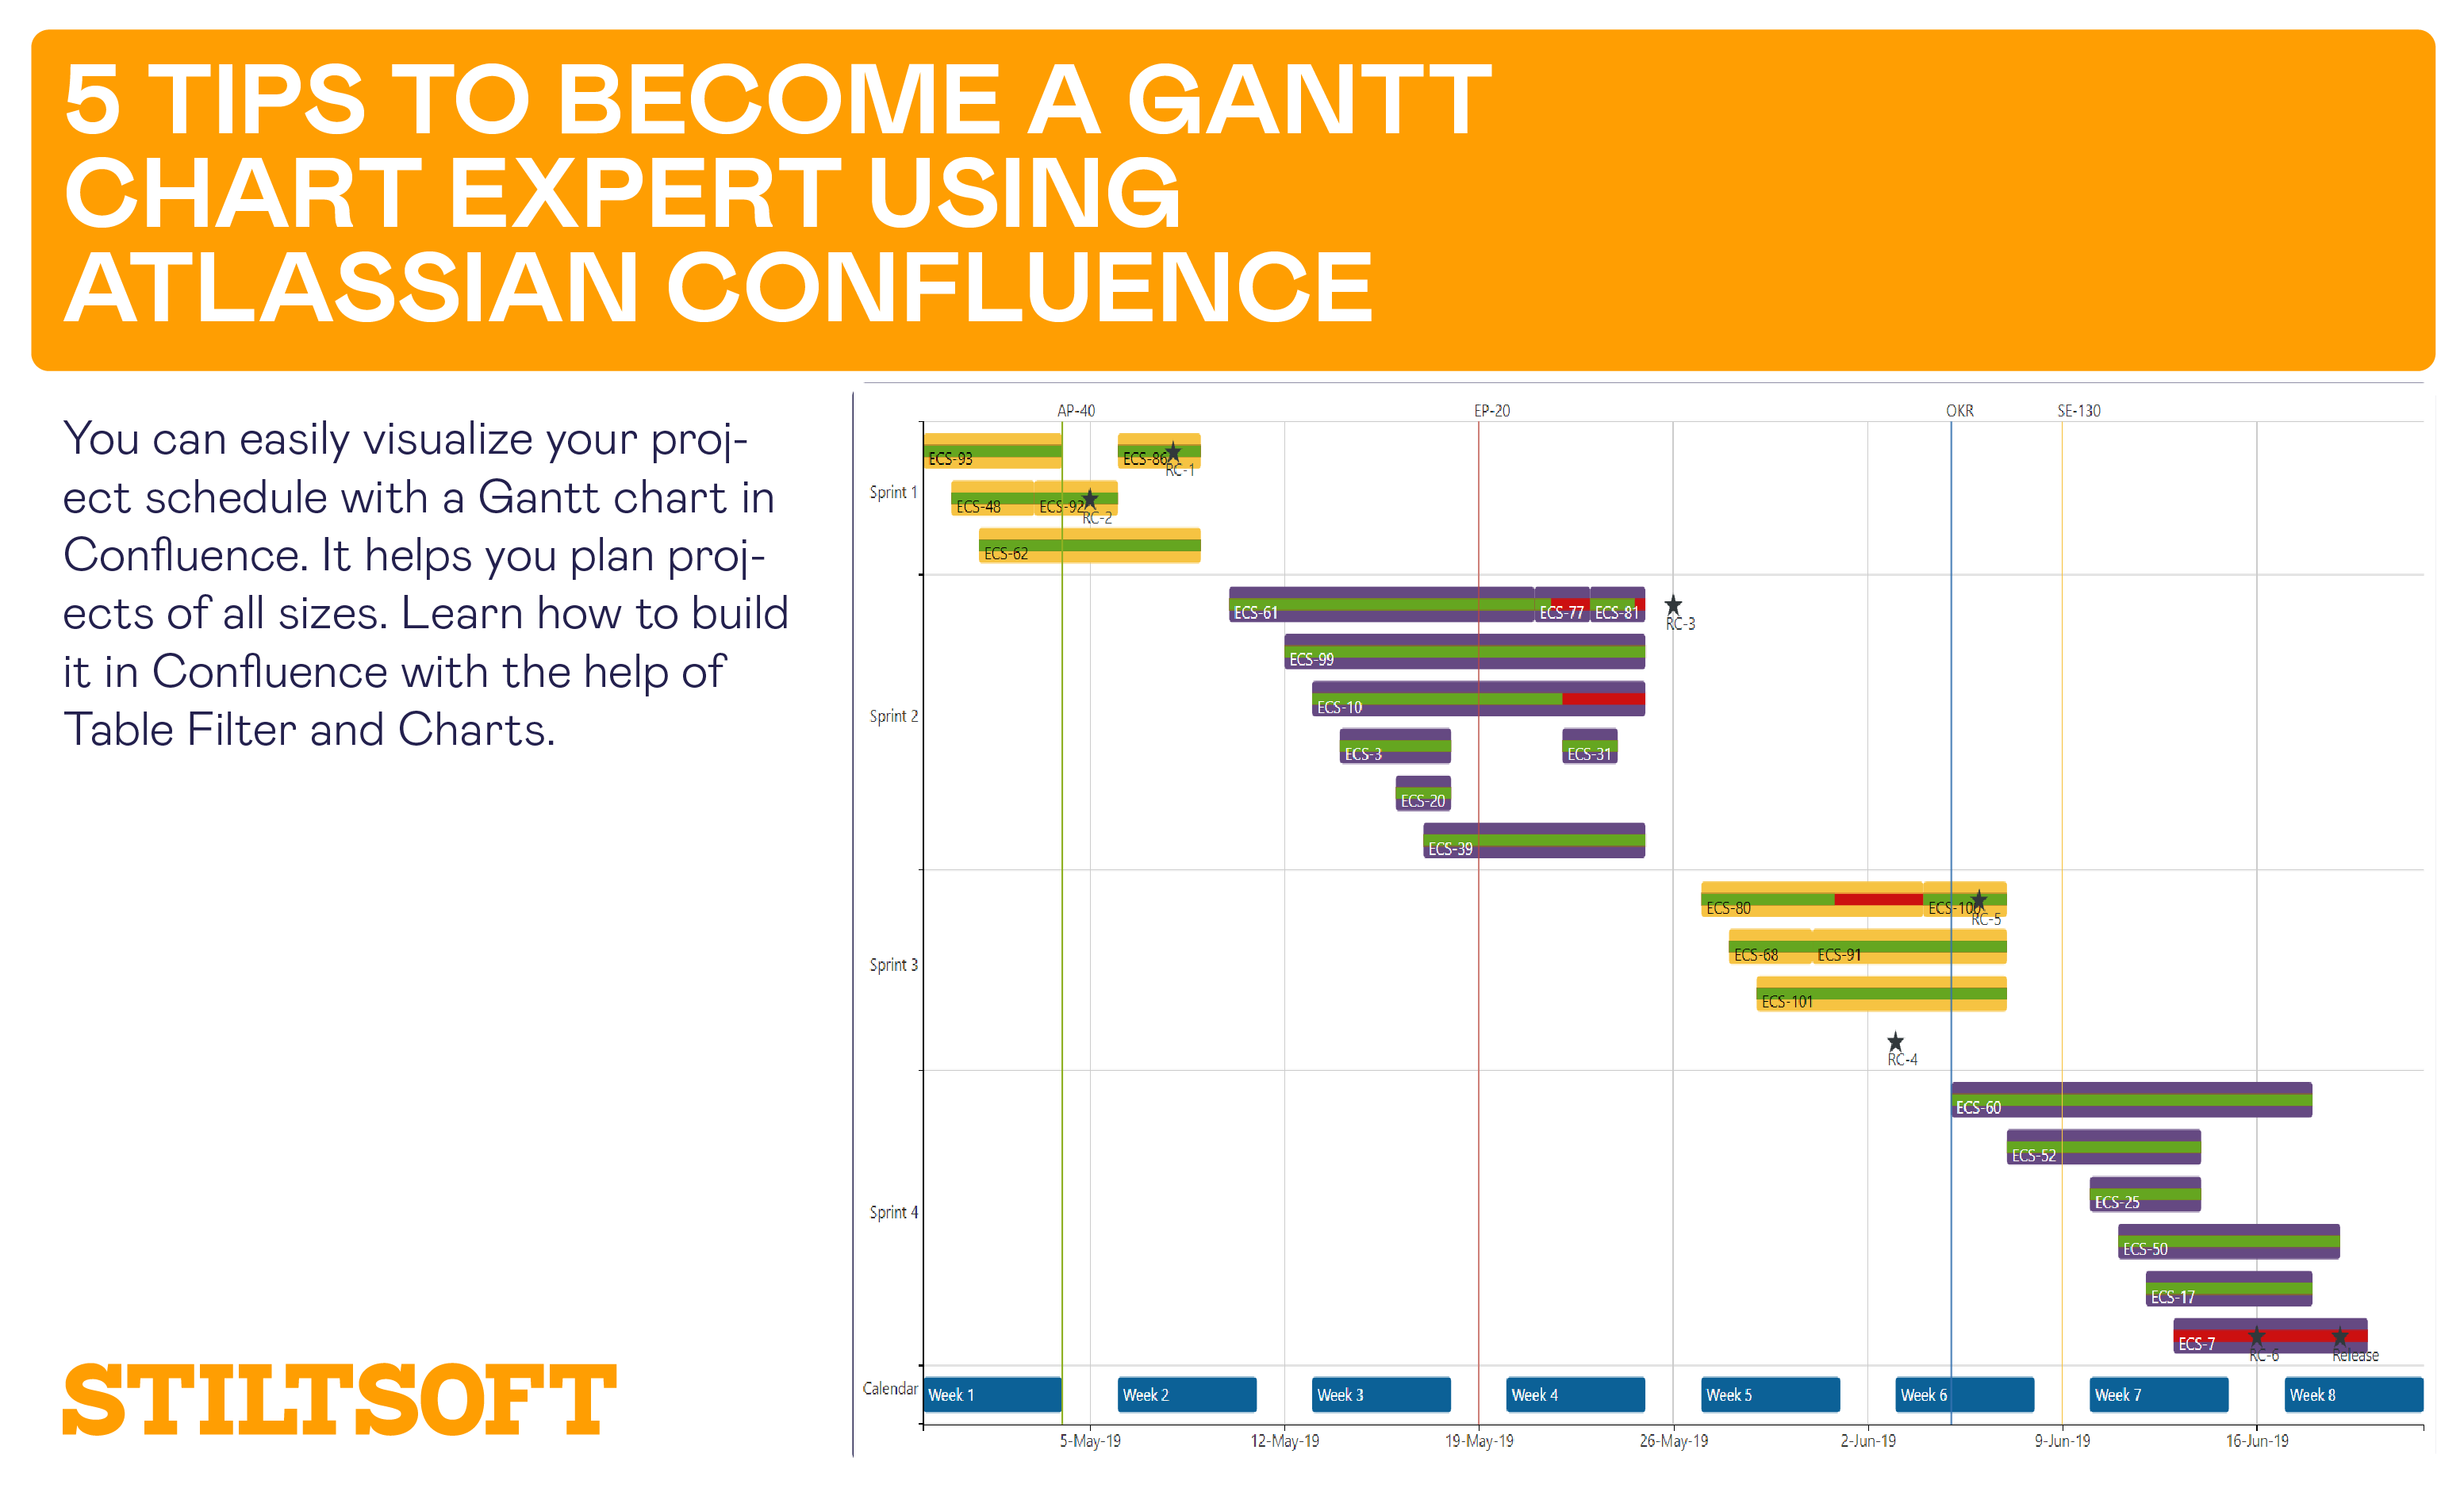 5 Tips To Become A Gantt Chart Expert Using Atlassian Confluence Stiltsoft